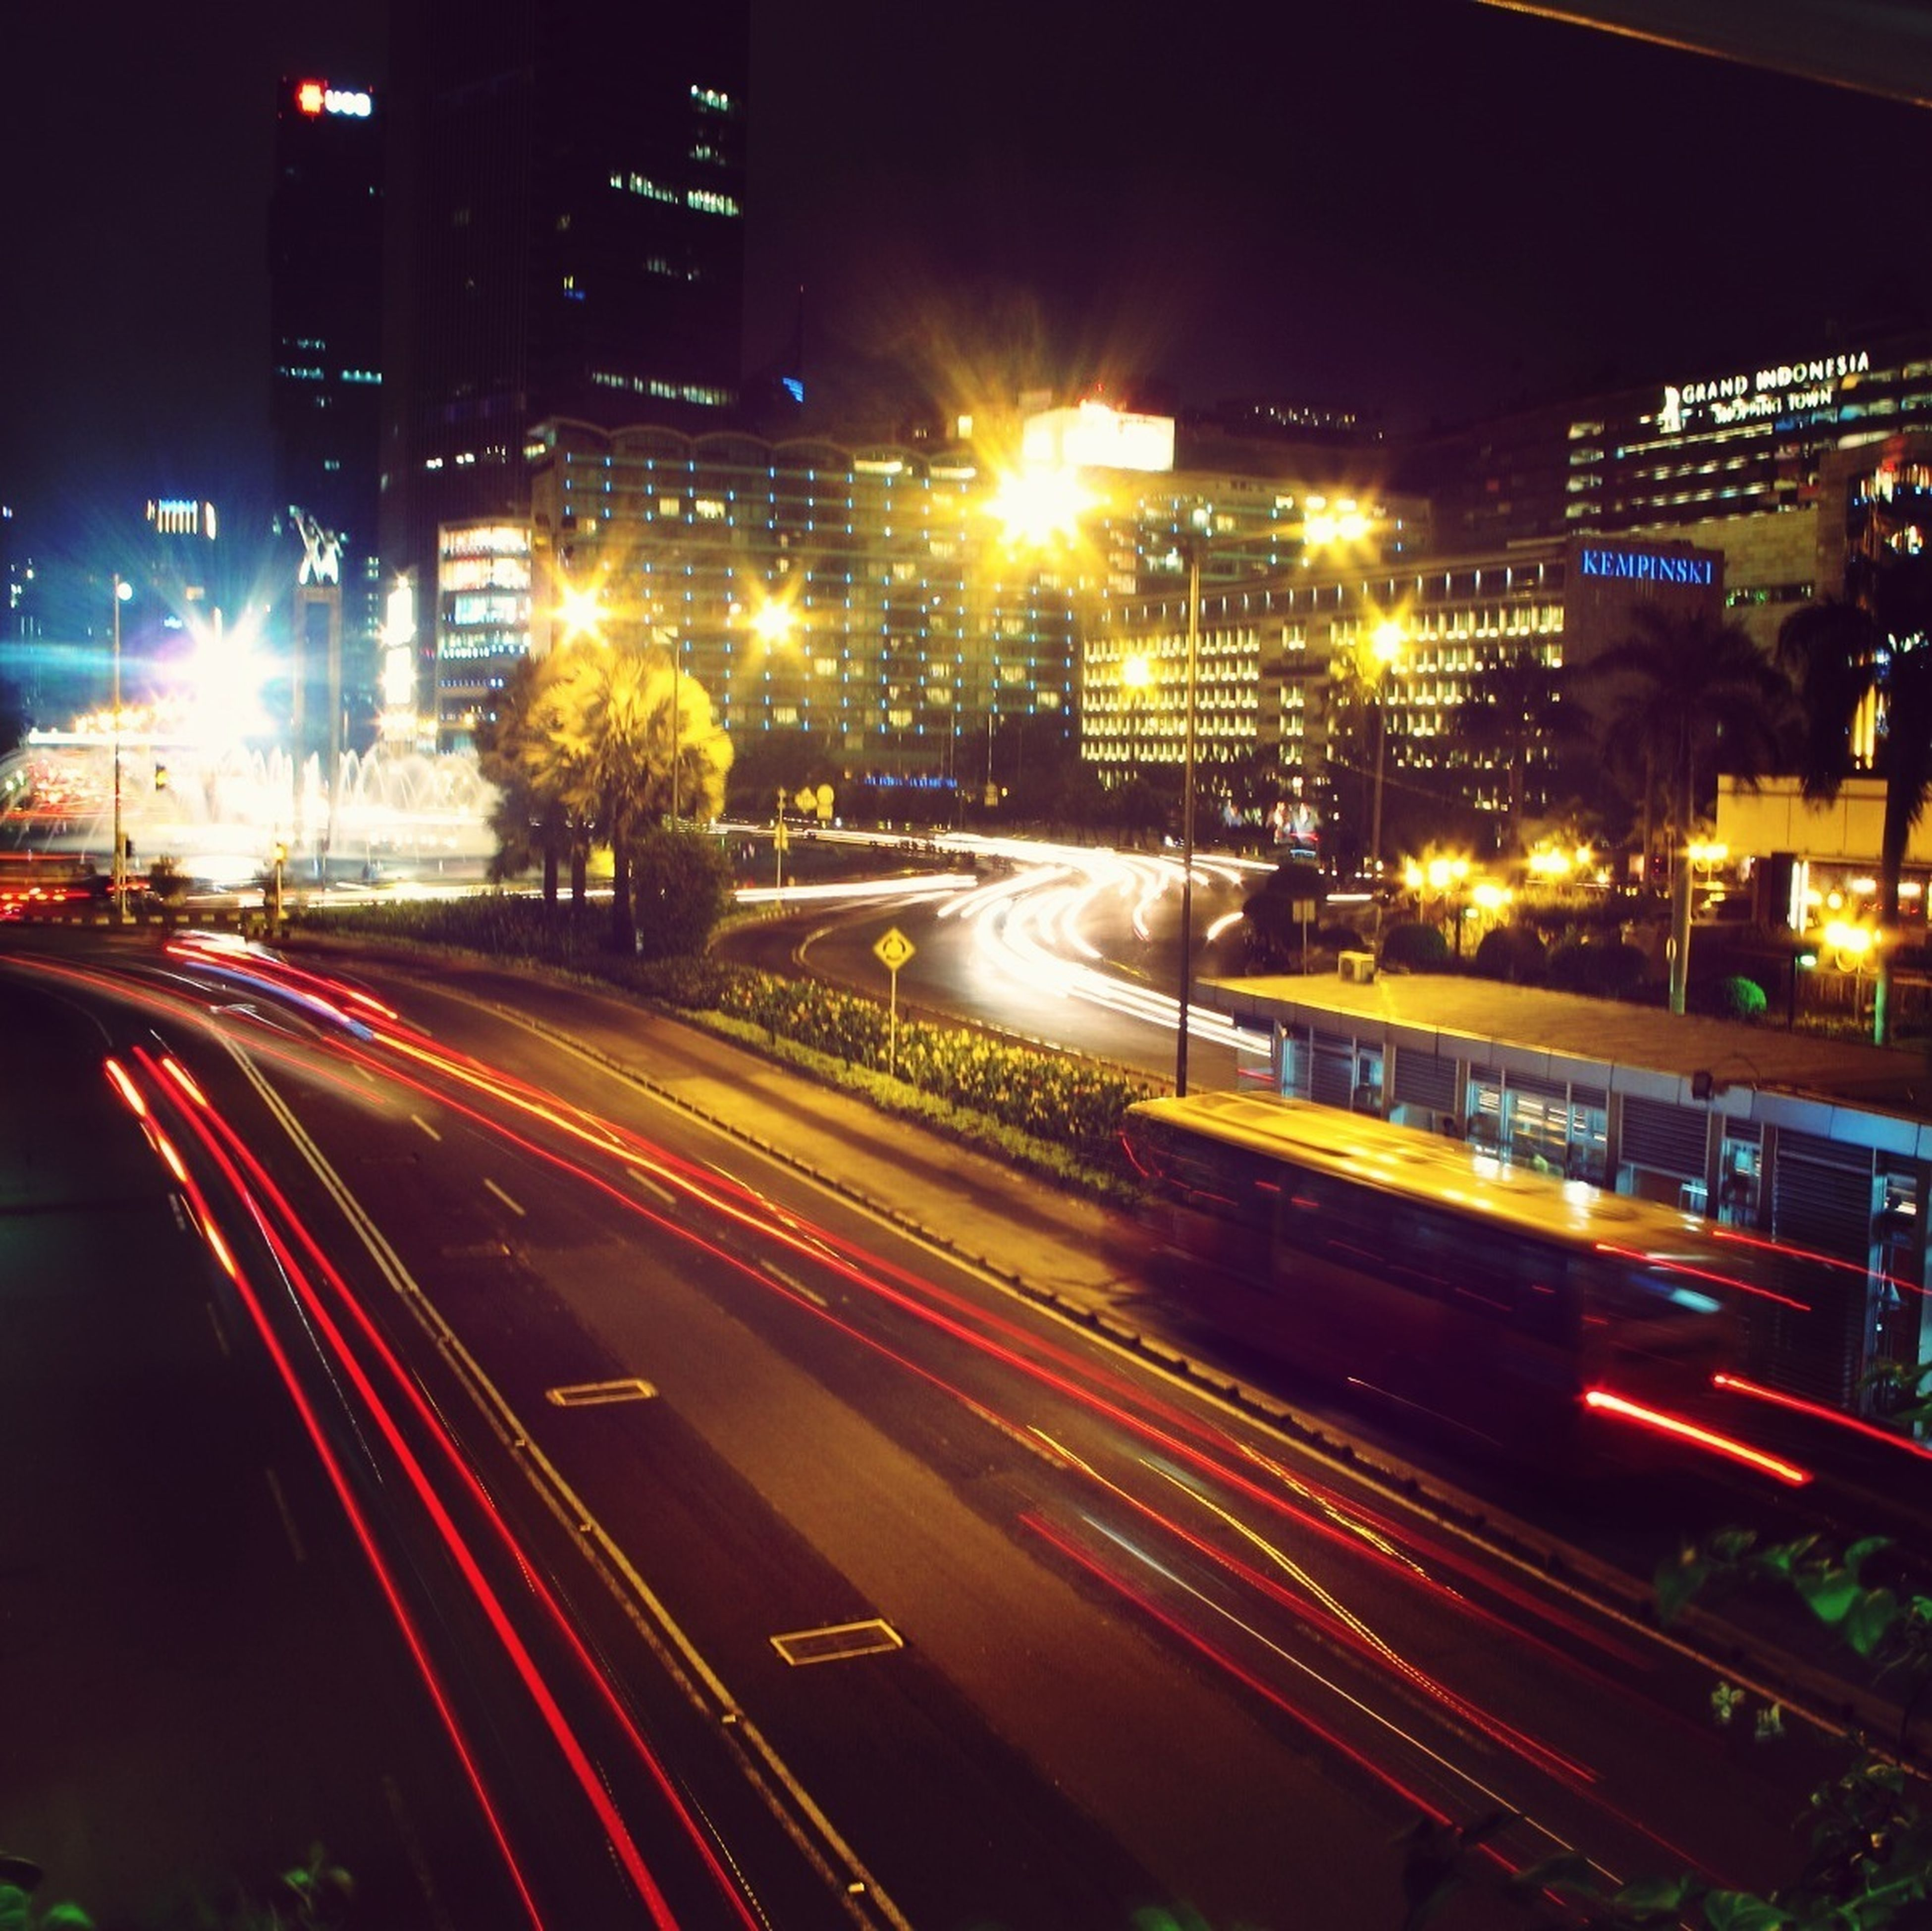 illuminated, night, long exposure, light trail, city, building exterior, motion, architecture, speed, transportation, built structure, street, traffic, city life, road, blurred motion, city street, street light, high angle view, car